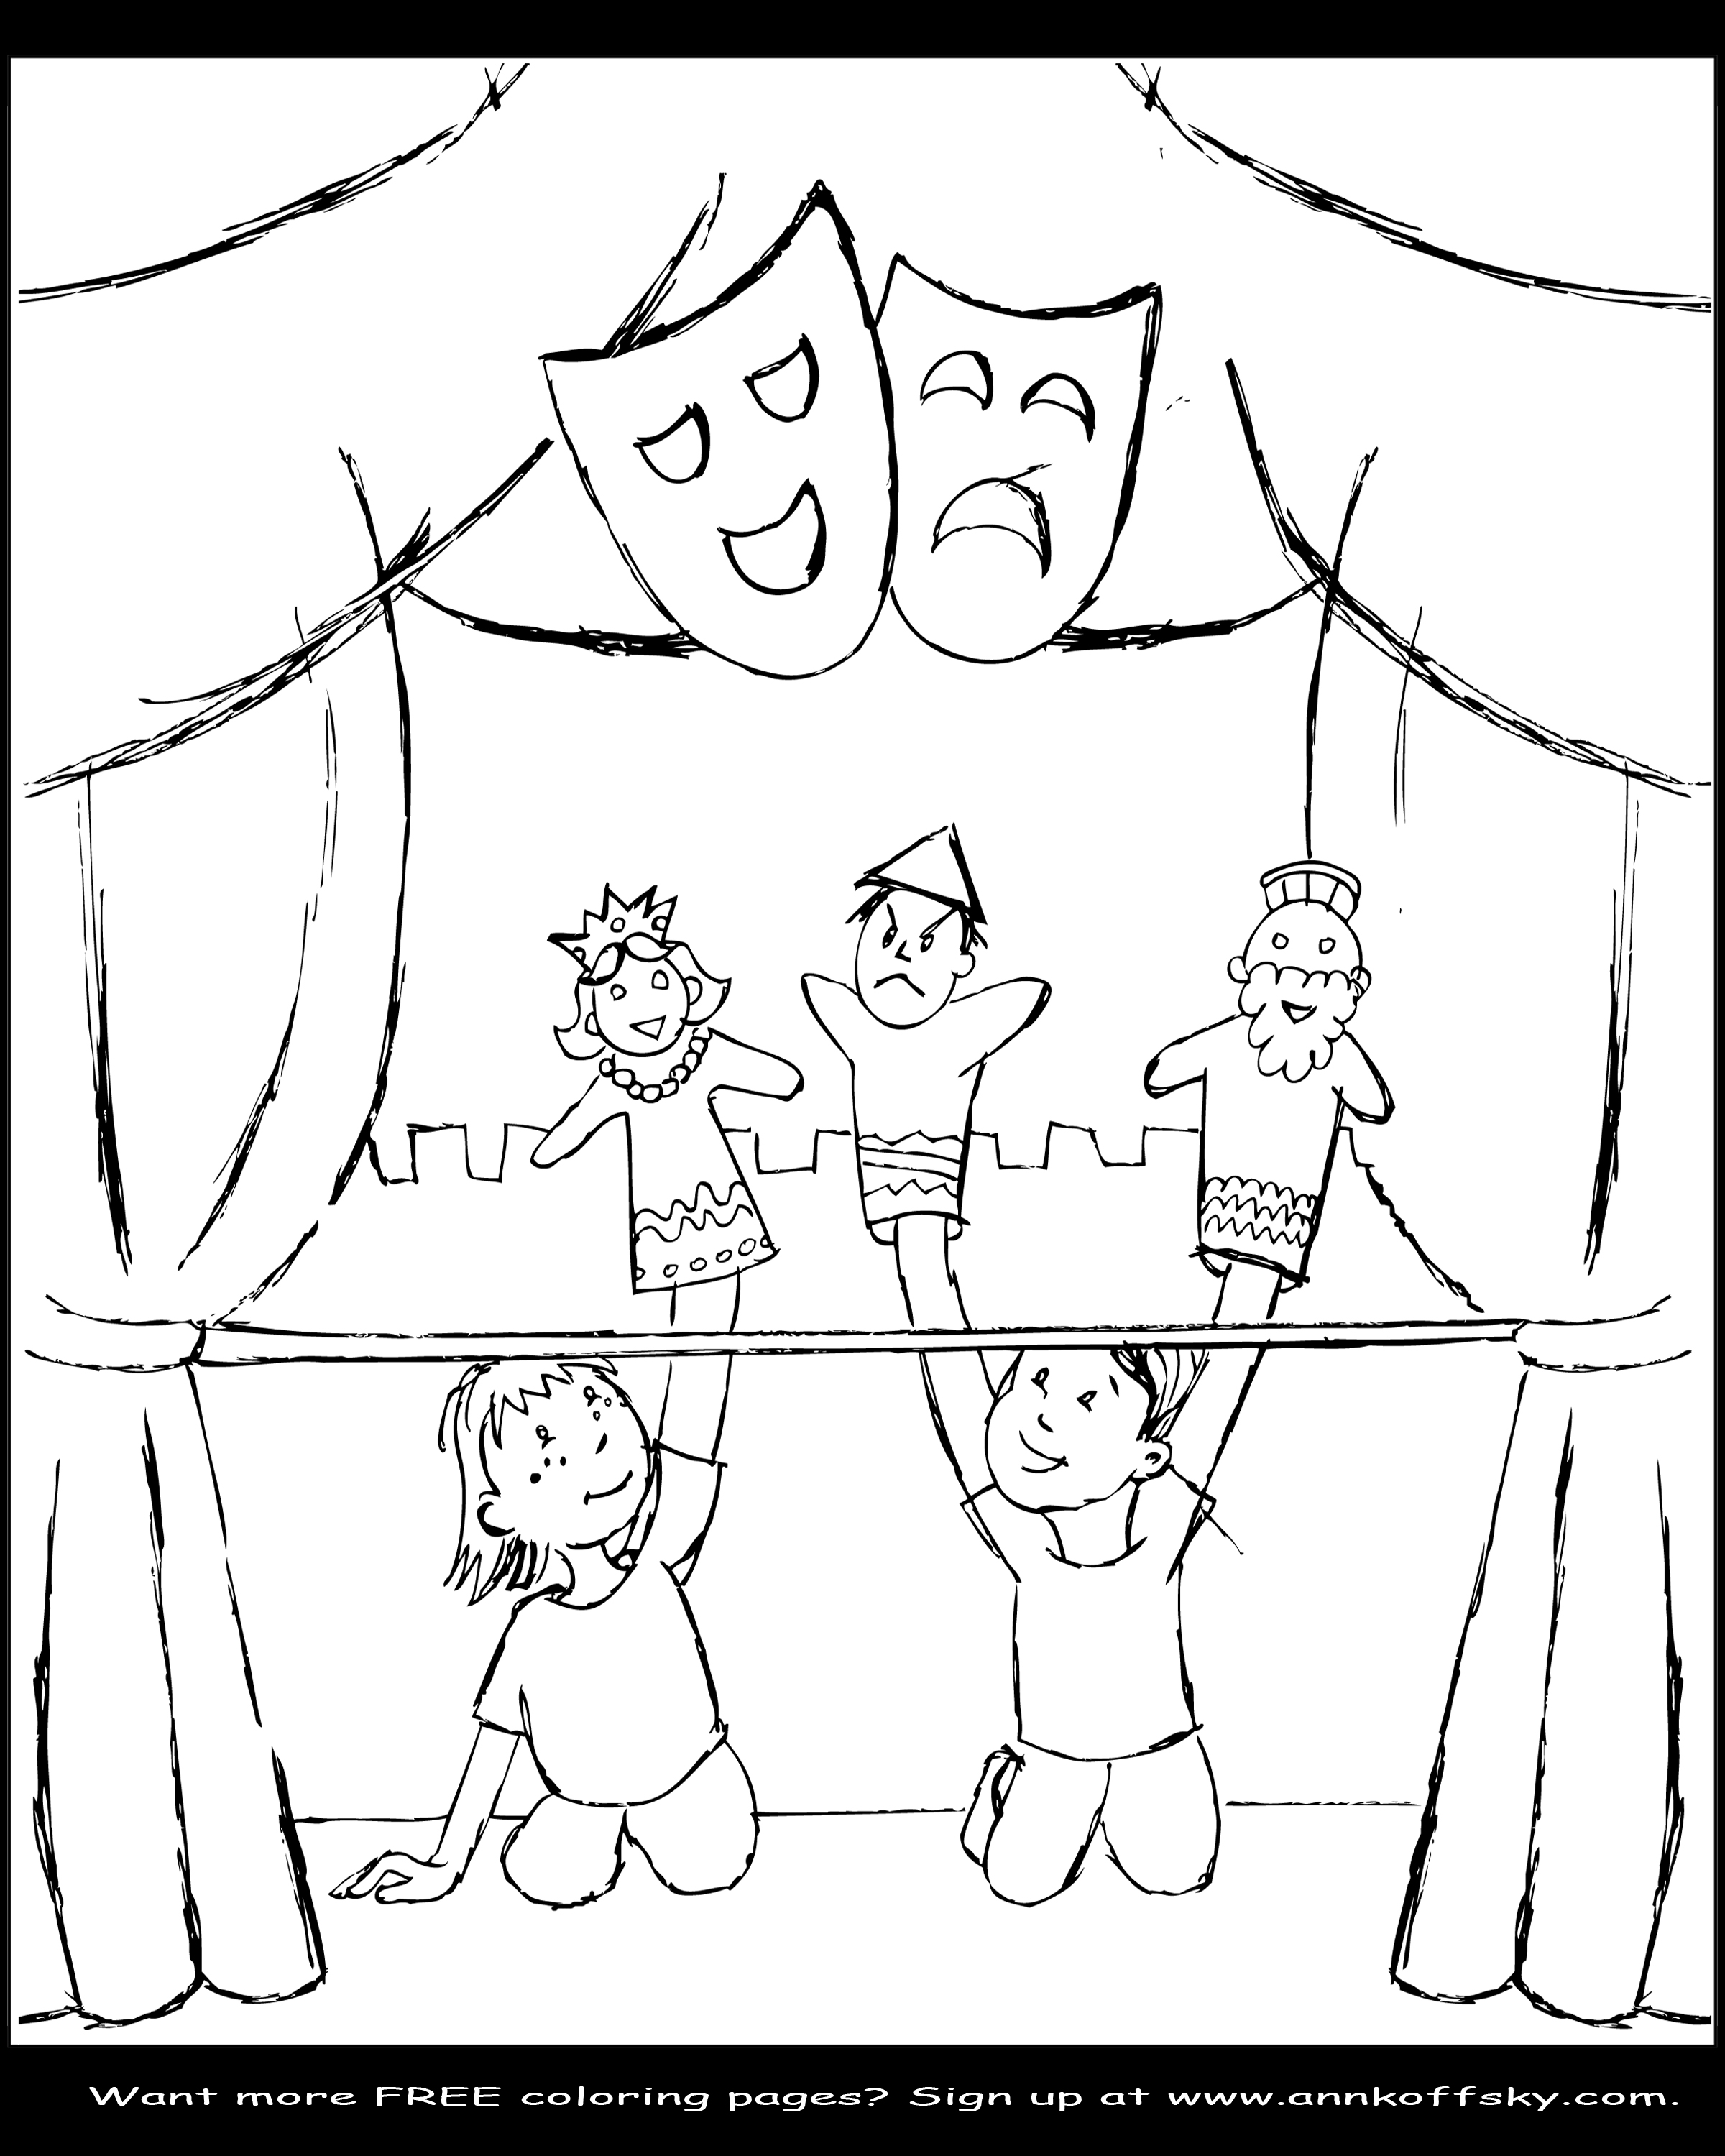 puppets coloring pages - photo#33